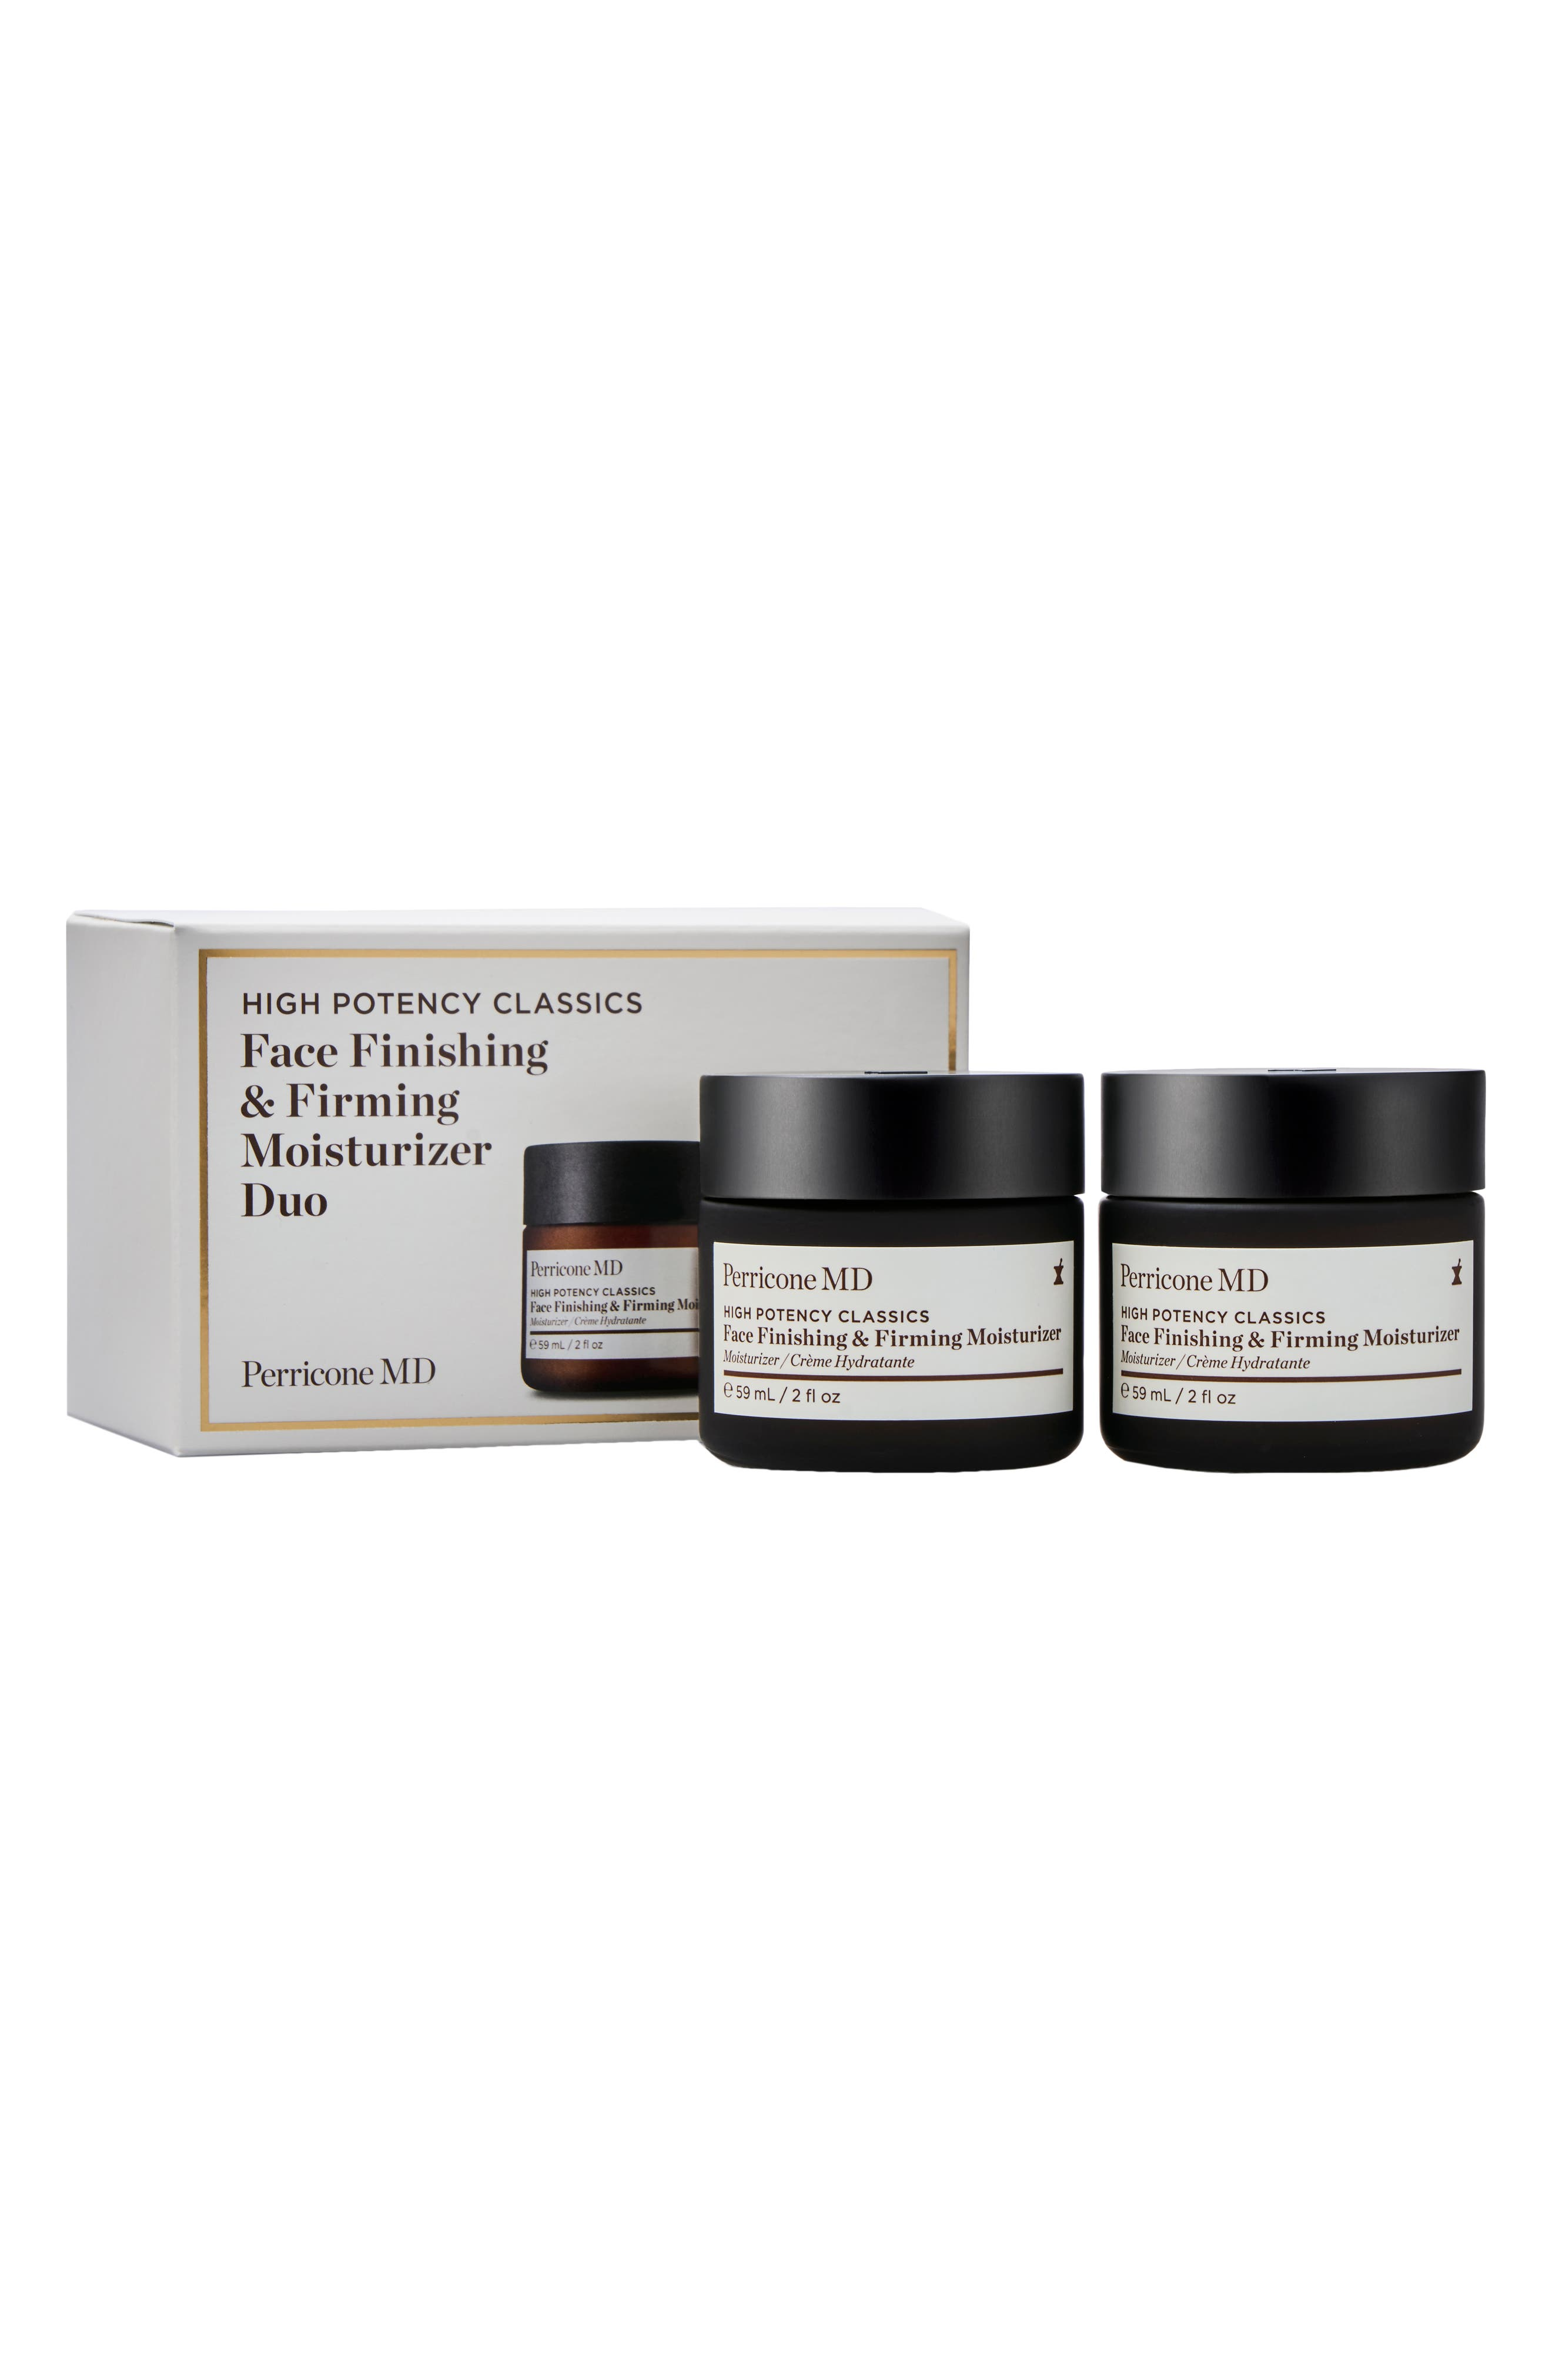 Perricone Md High Potency Classics Face Finishing & Firming Moisturizer Duo